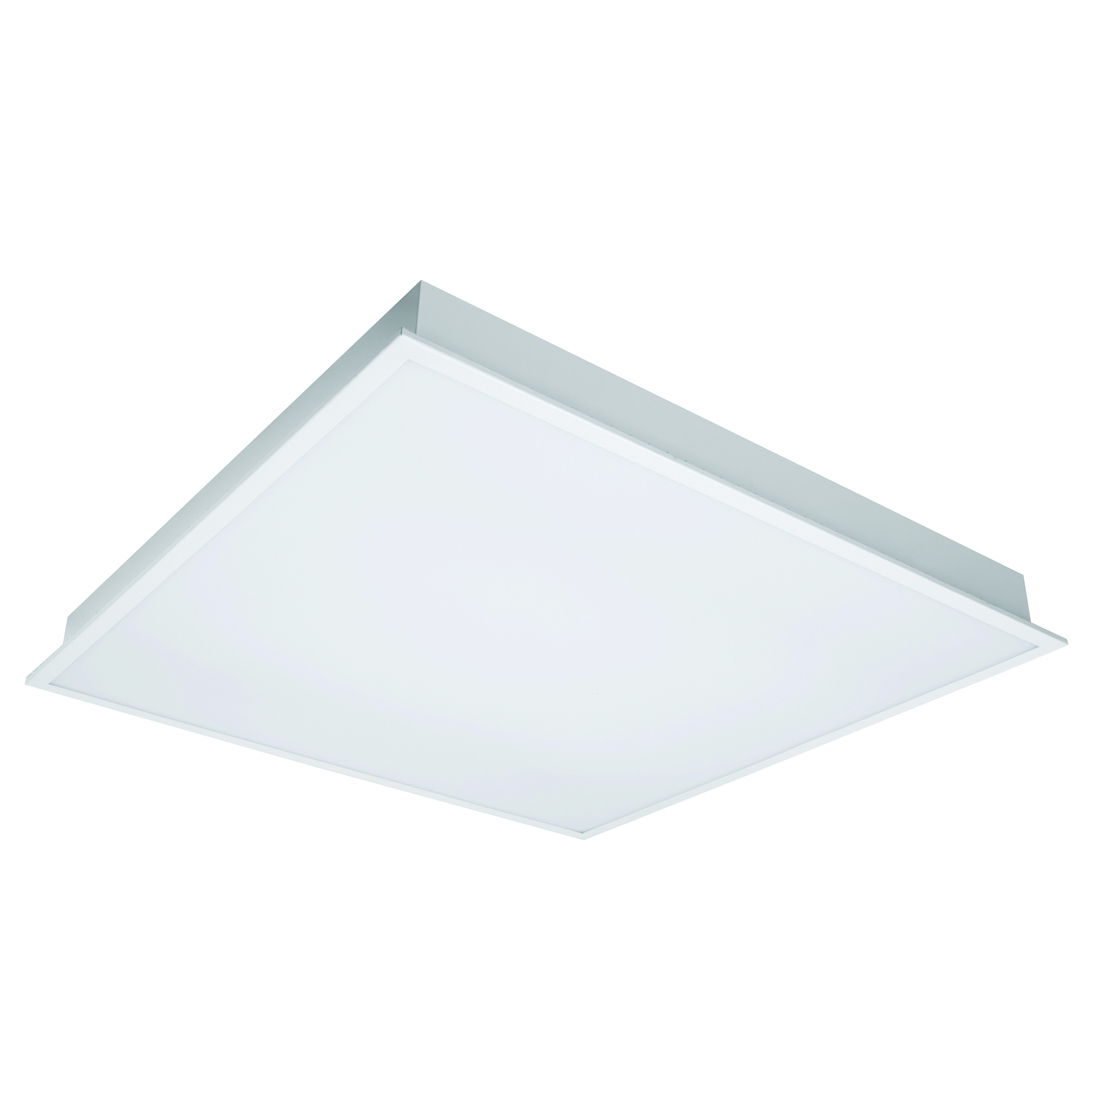 22PNL35/835/LED 80918 LED FLAT PANEL 2X2 35W 3500K DIMMABLE ProLED